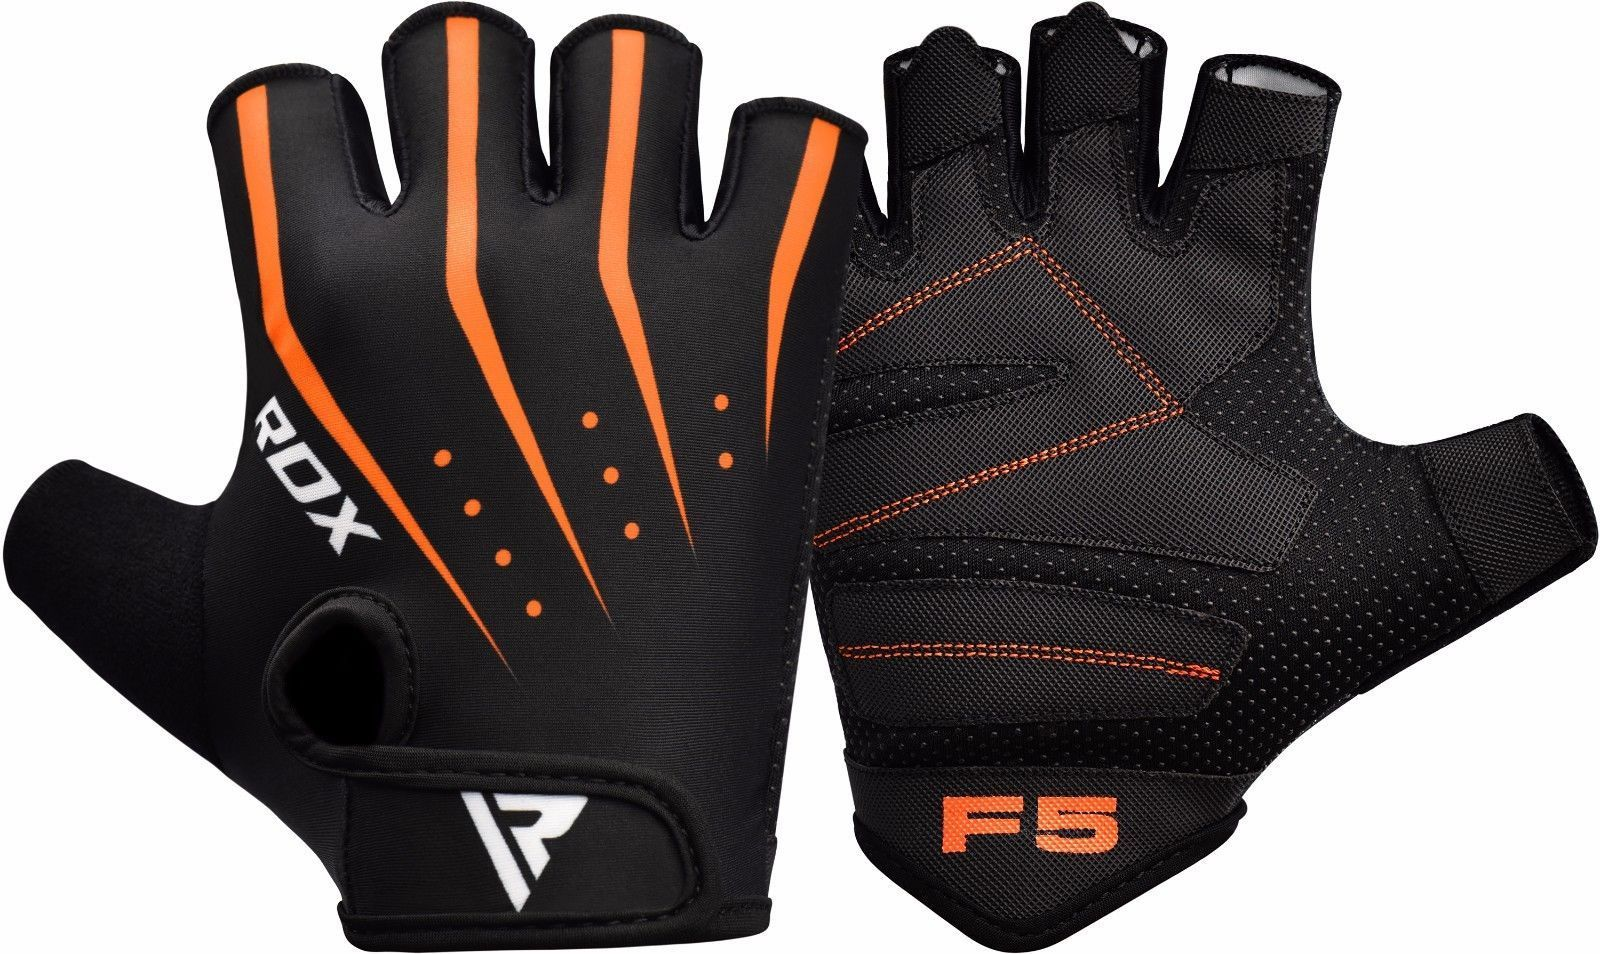 RDX WEIGHT LIFTING GYM GLOVES 5